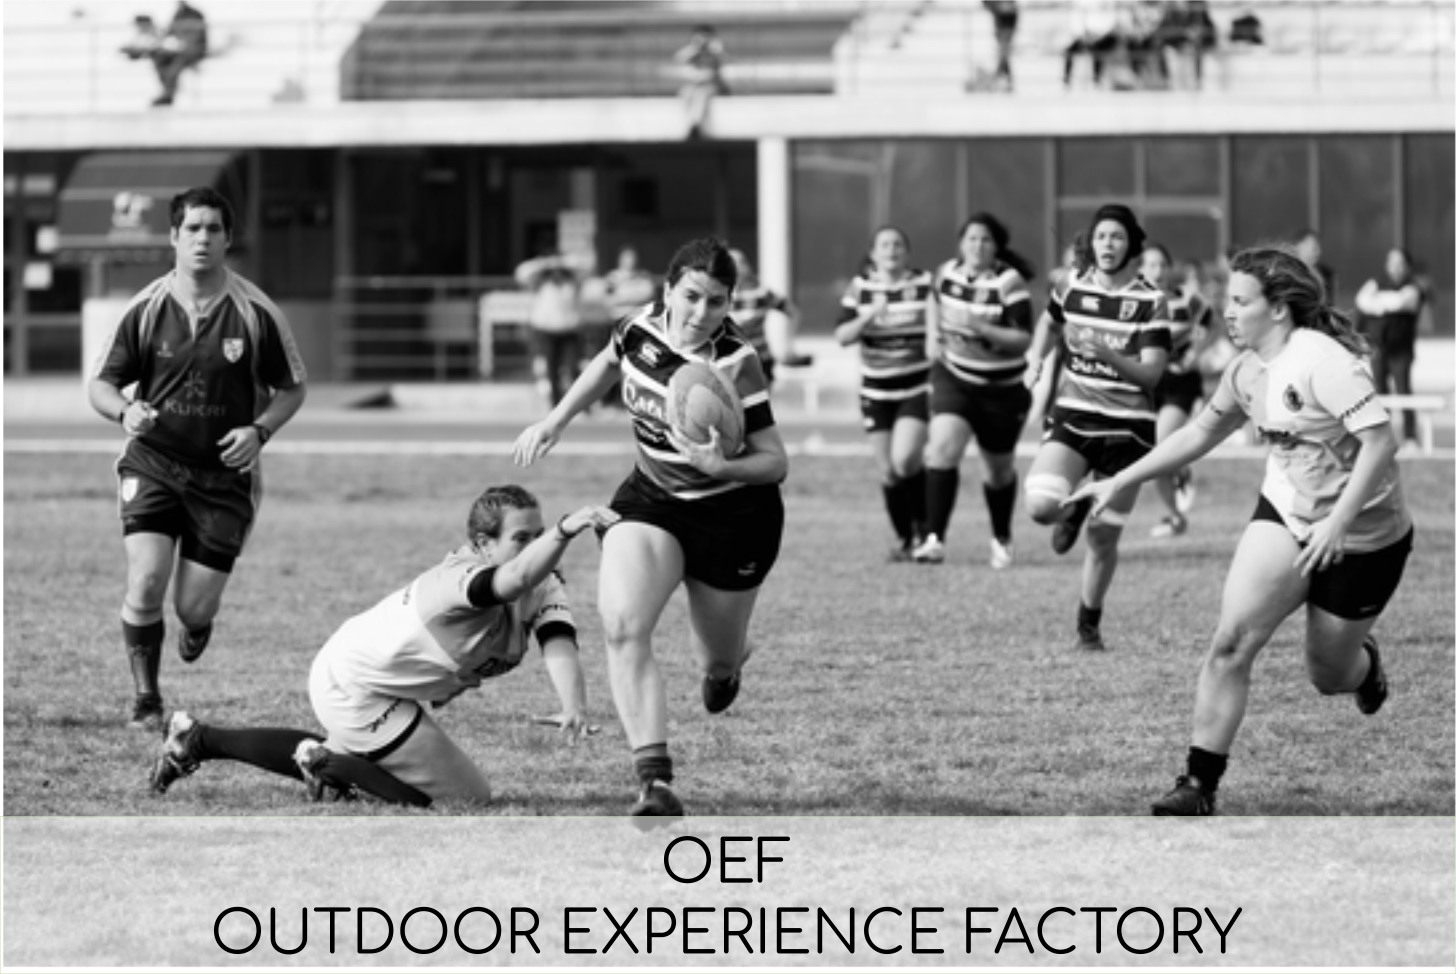 oef outdoor experience factory